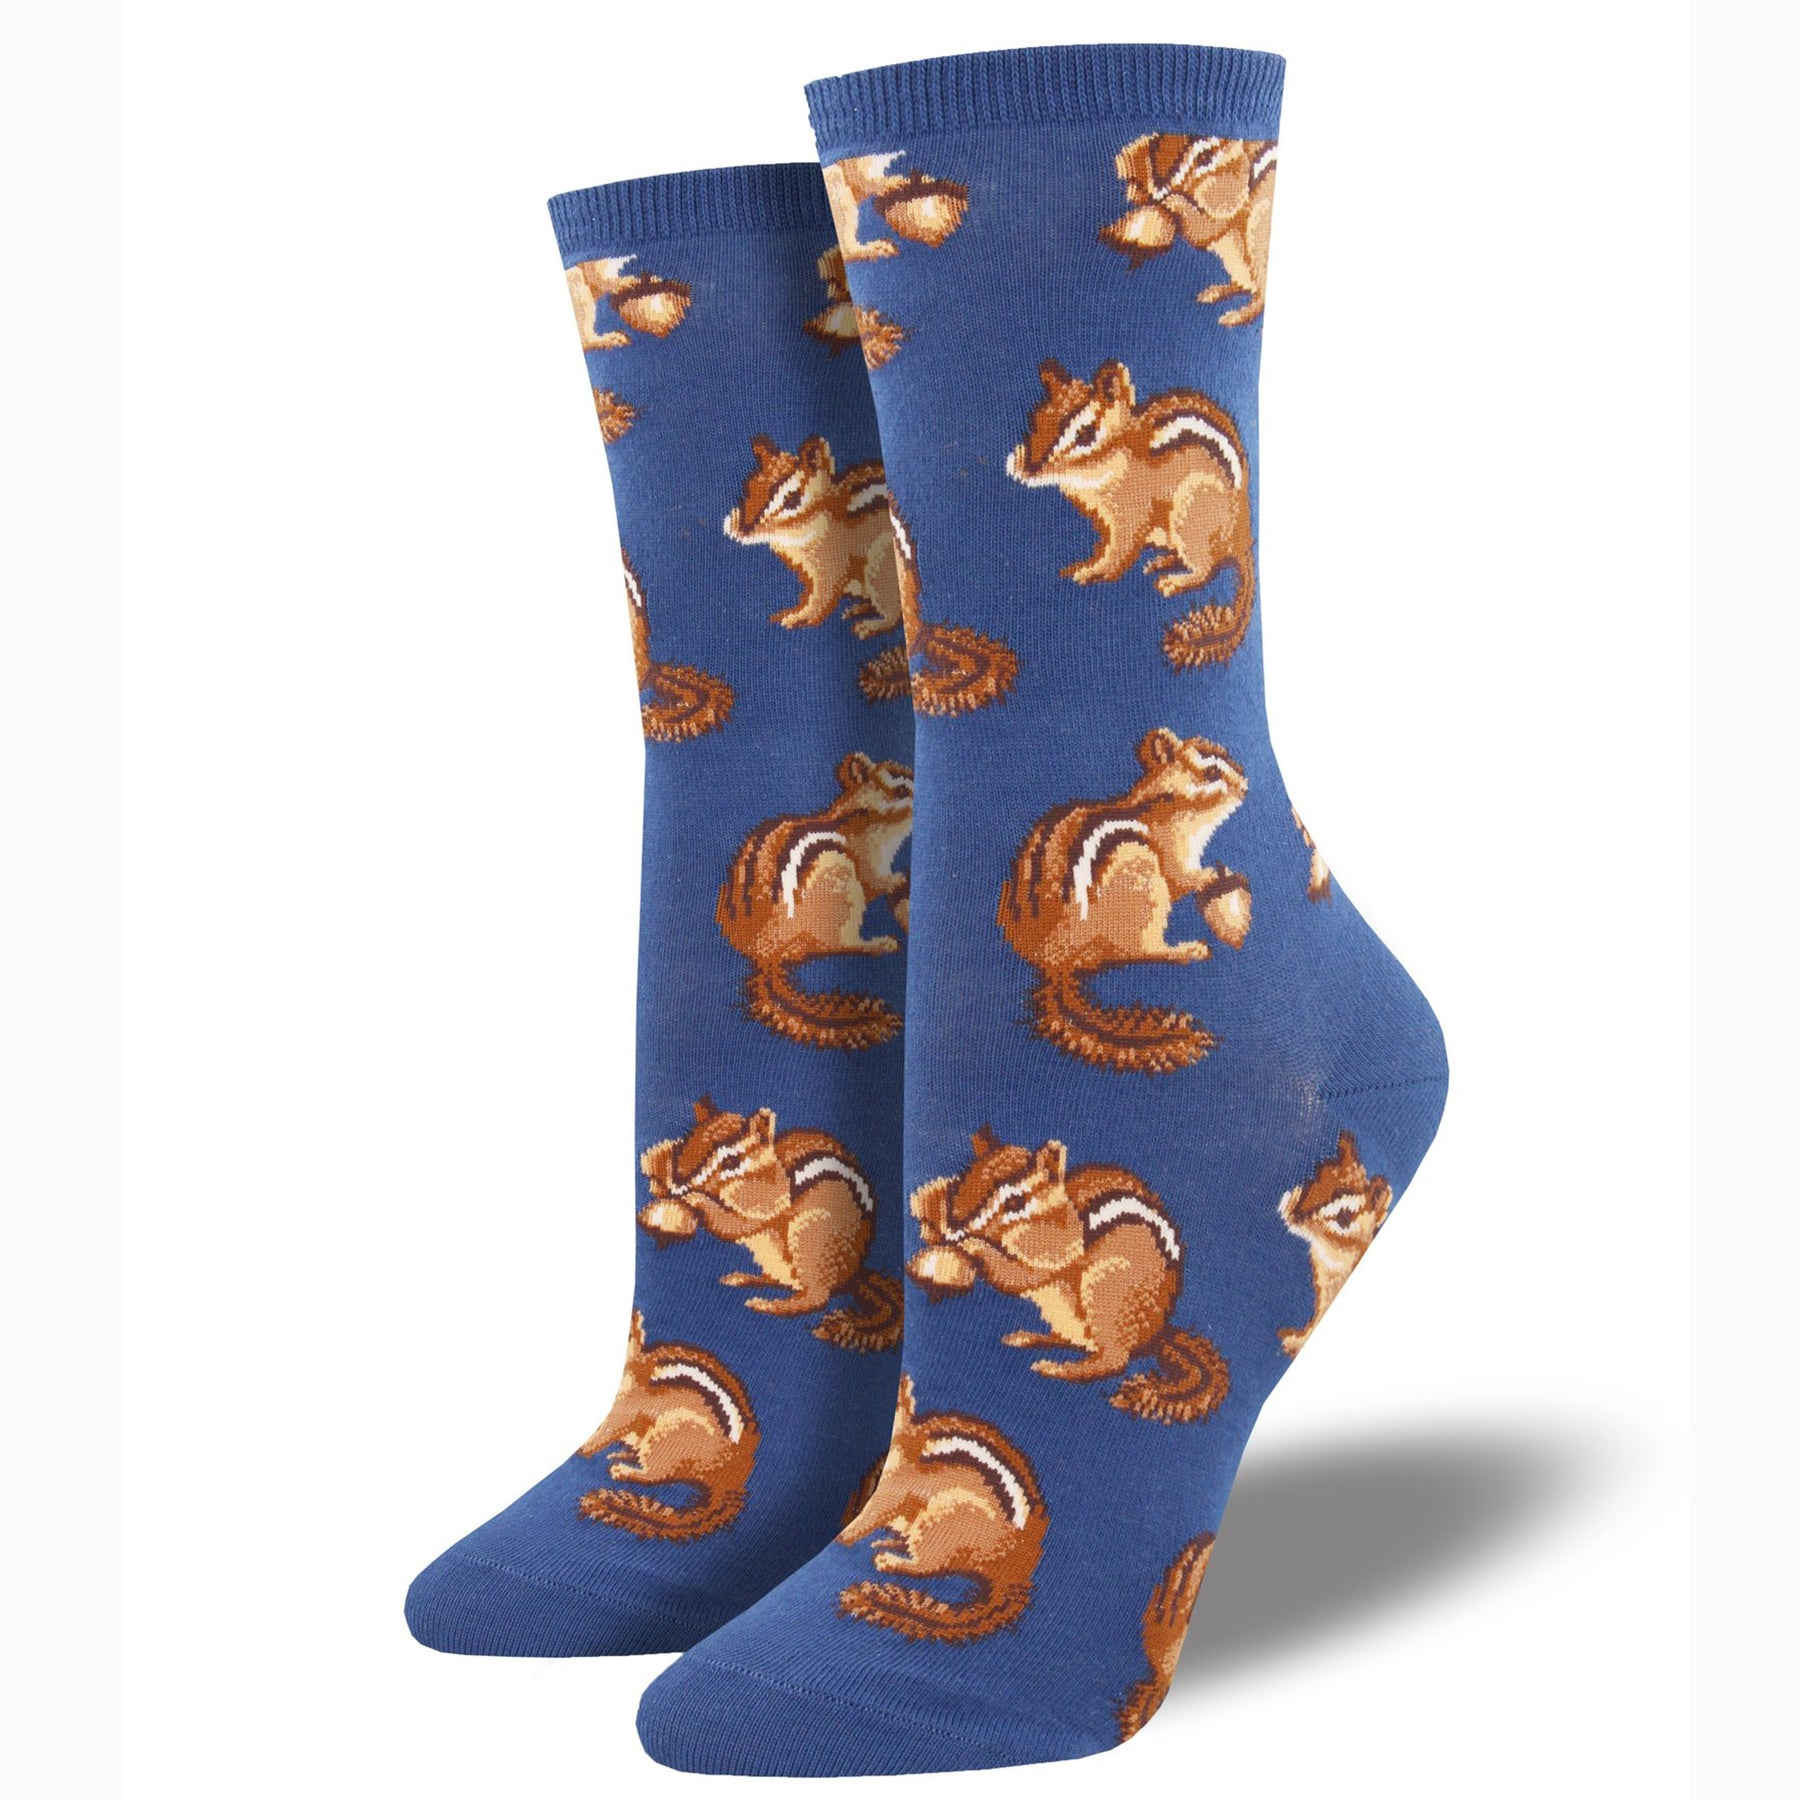 chipmonk cheeks socks